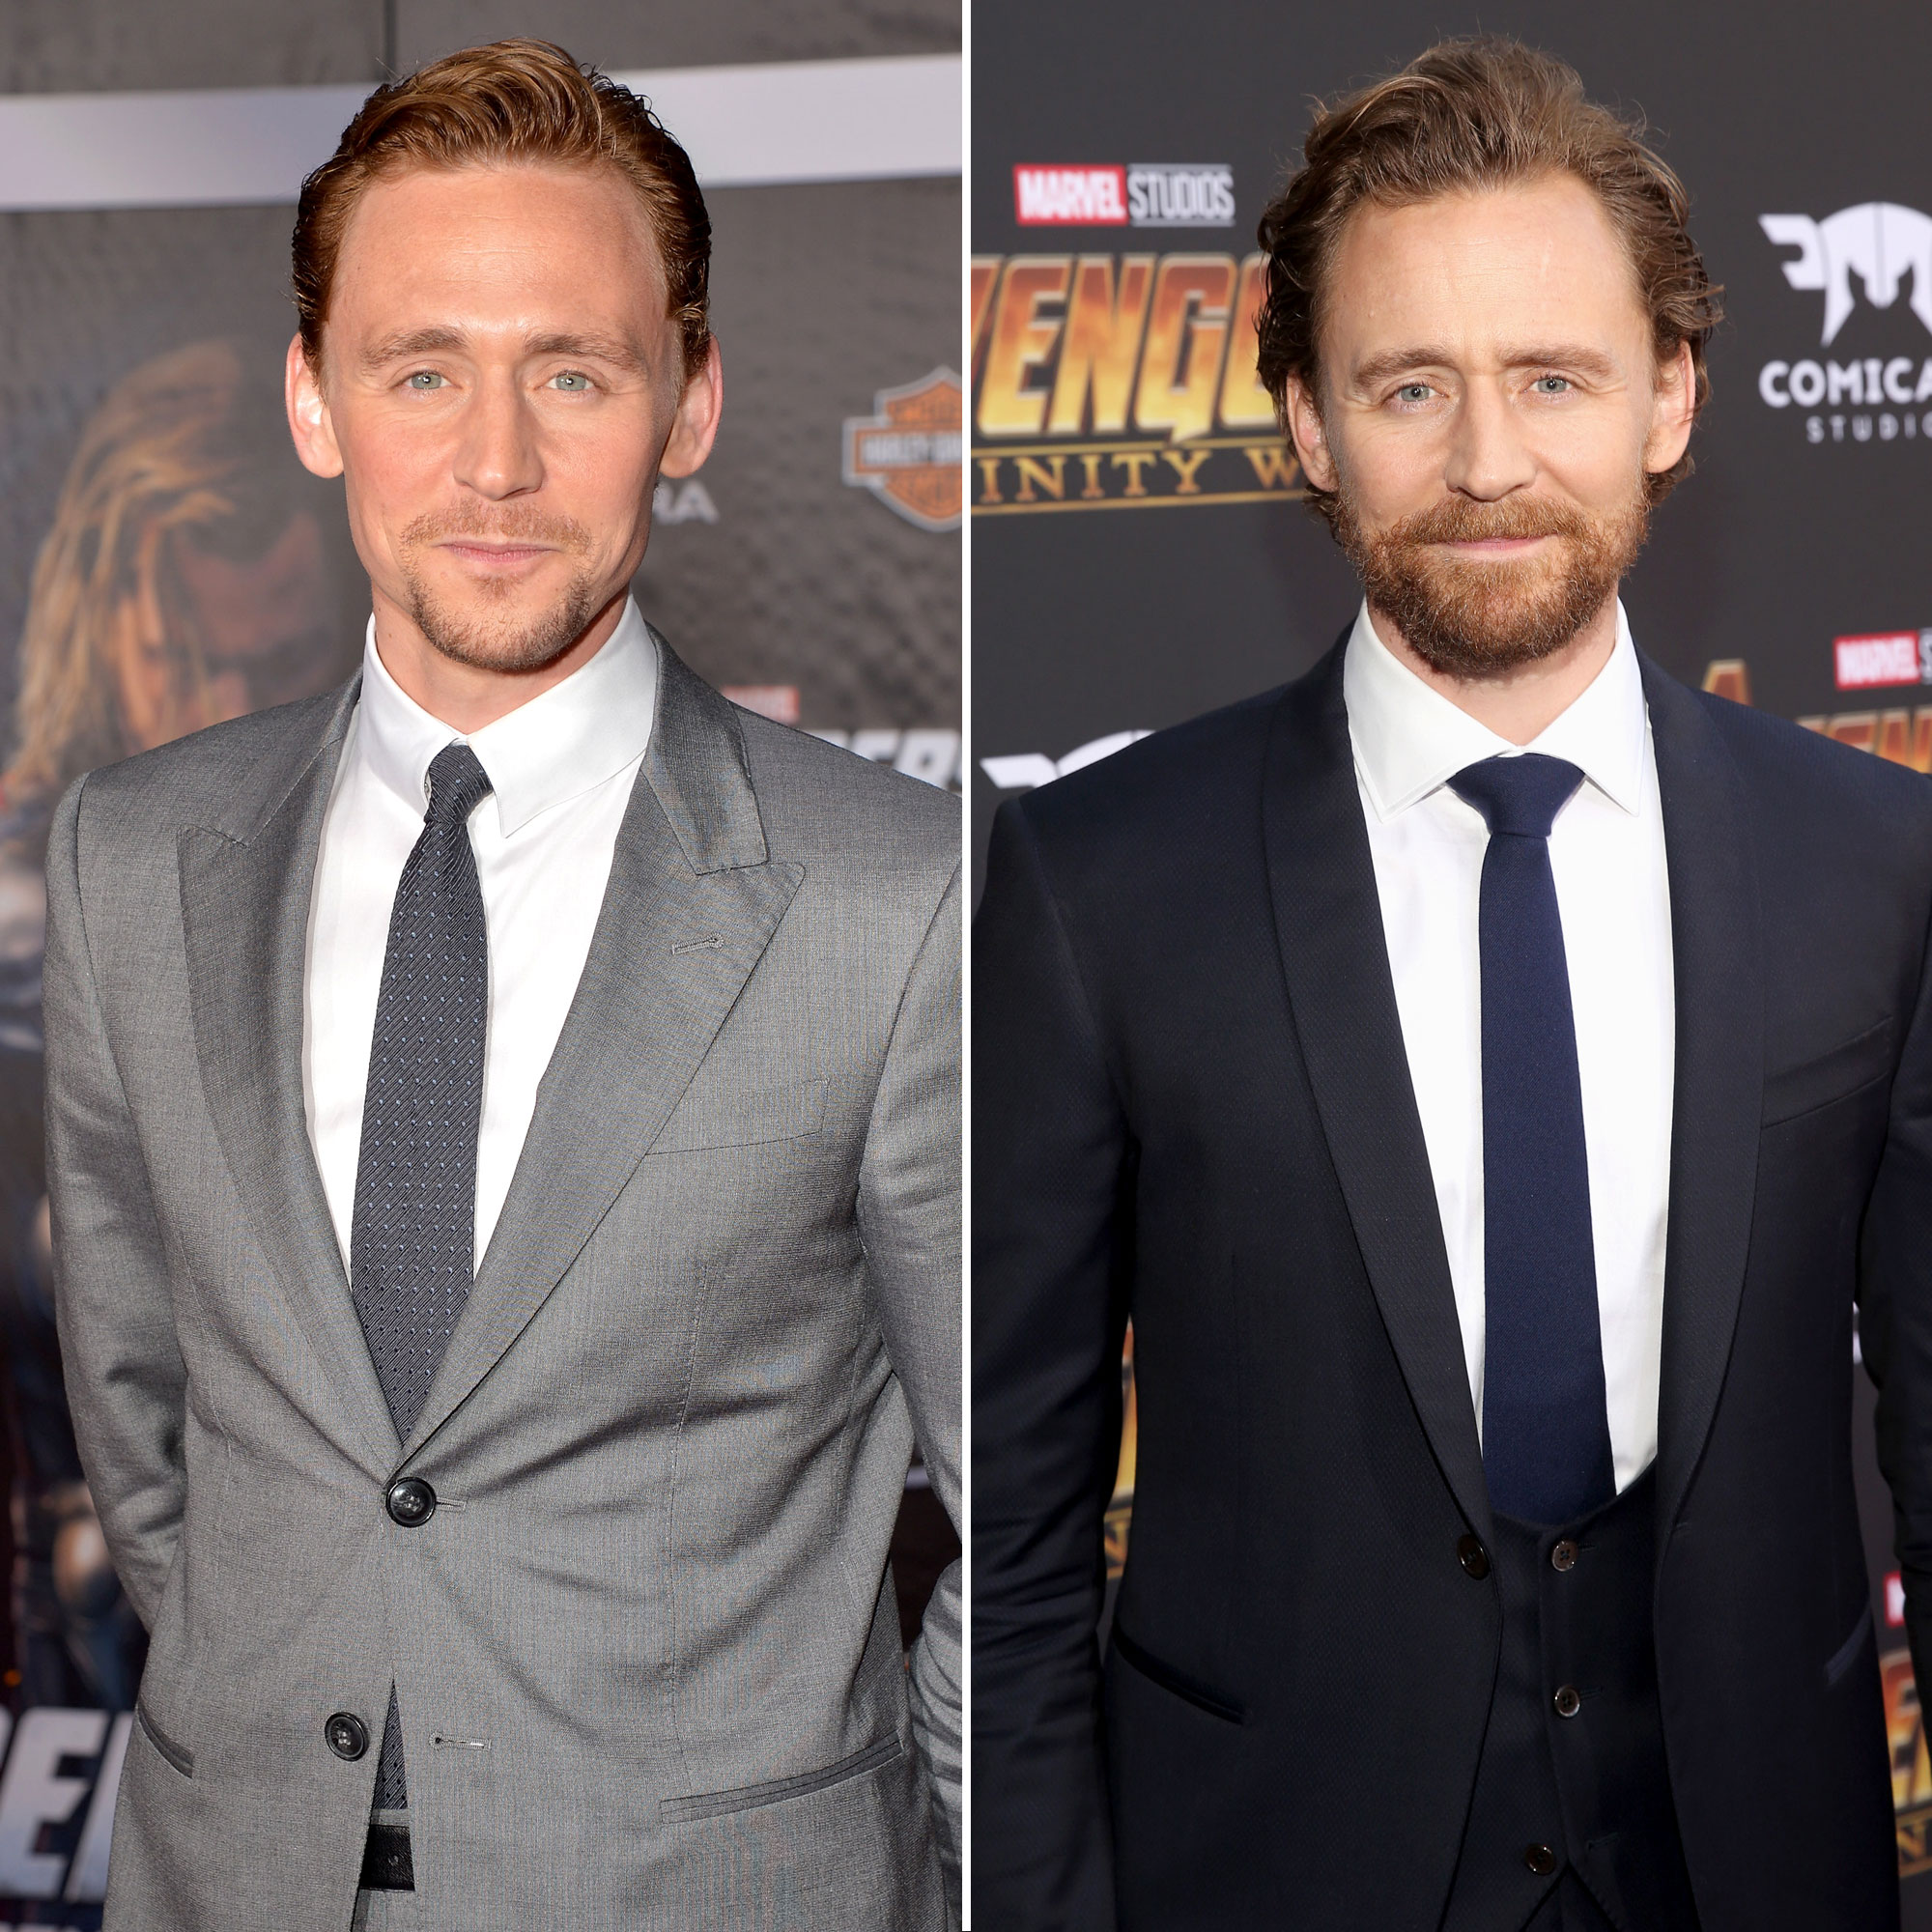 Tom Hiddleston Avengers Premiere First Super Red Carpet to Their Last - Taylor Swift 's ex, who got his big career break with 2011's Thor , skipped the Endgame premiere so as not to spoil its ending, but he looked much the same at the Infinity War premiere in 2018 as he did in 2012 — plus a little extra facial hair.